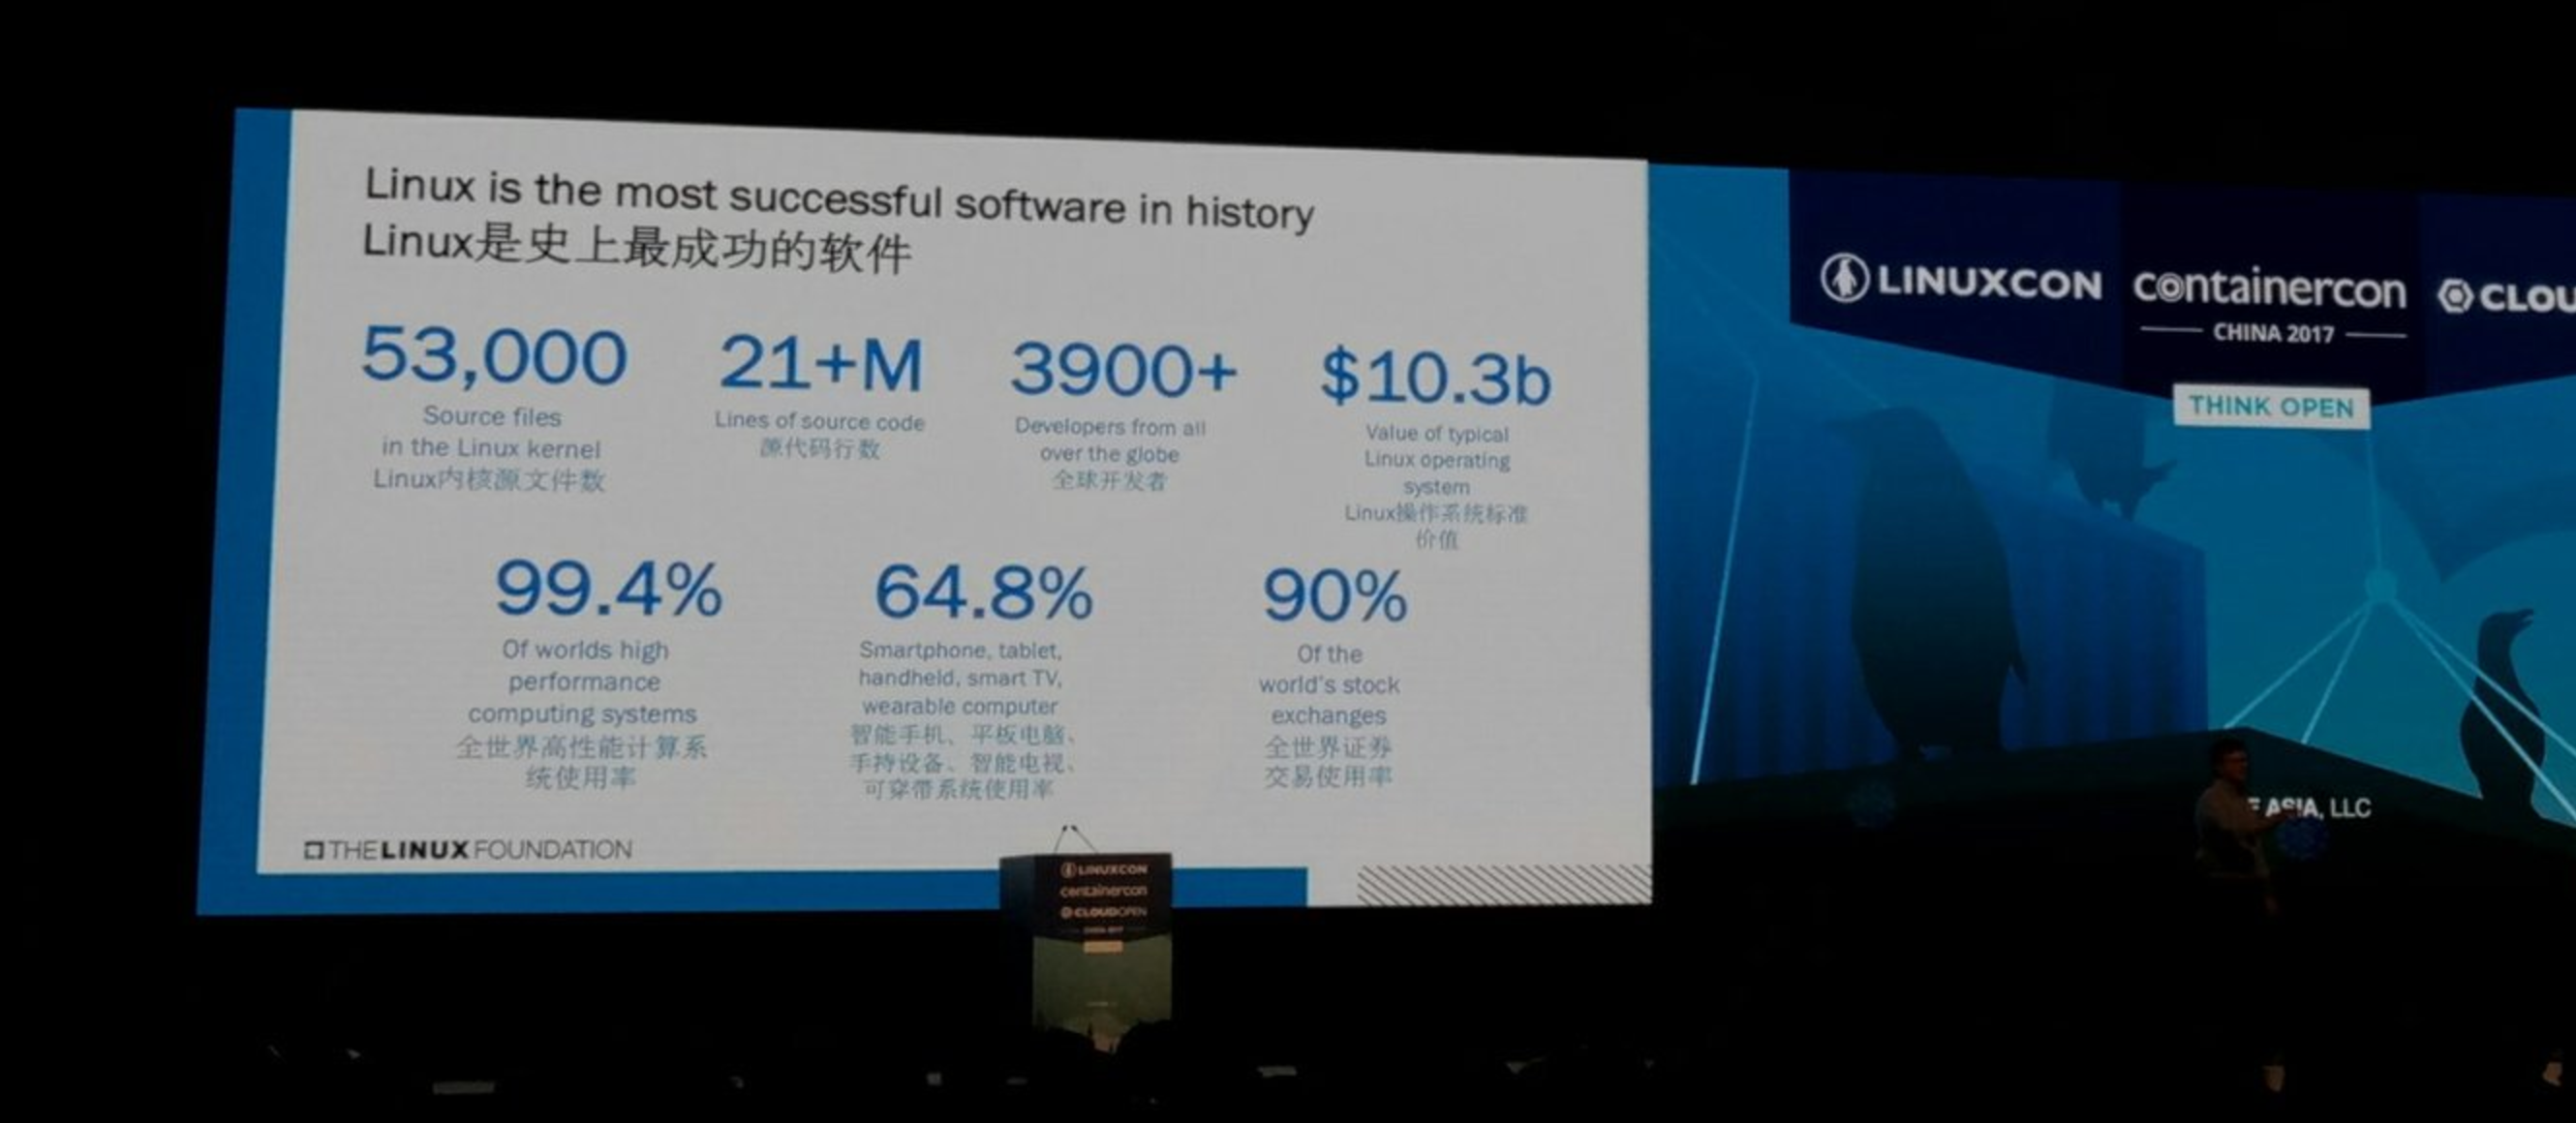 Linux-numbers-linuxcon-2017.png